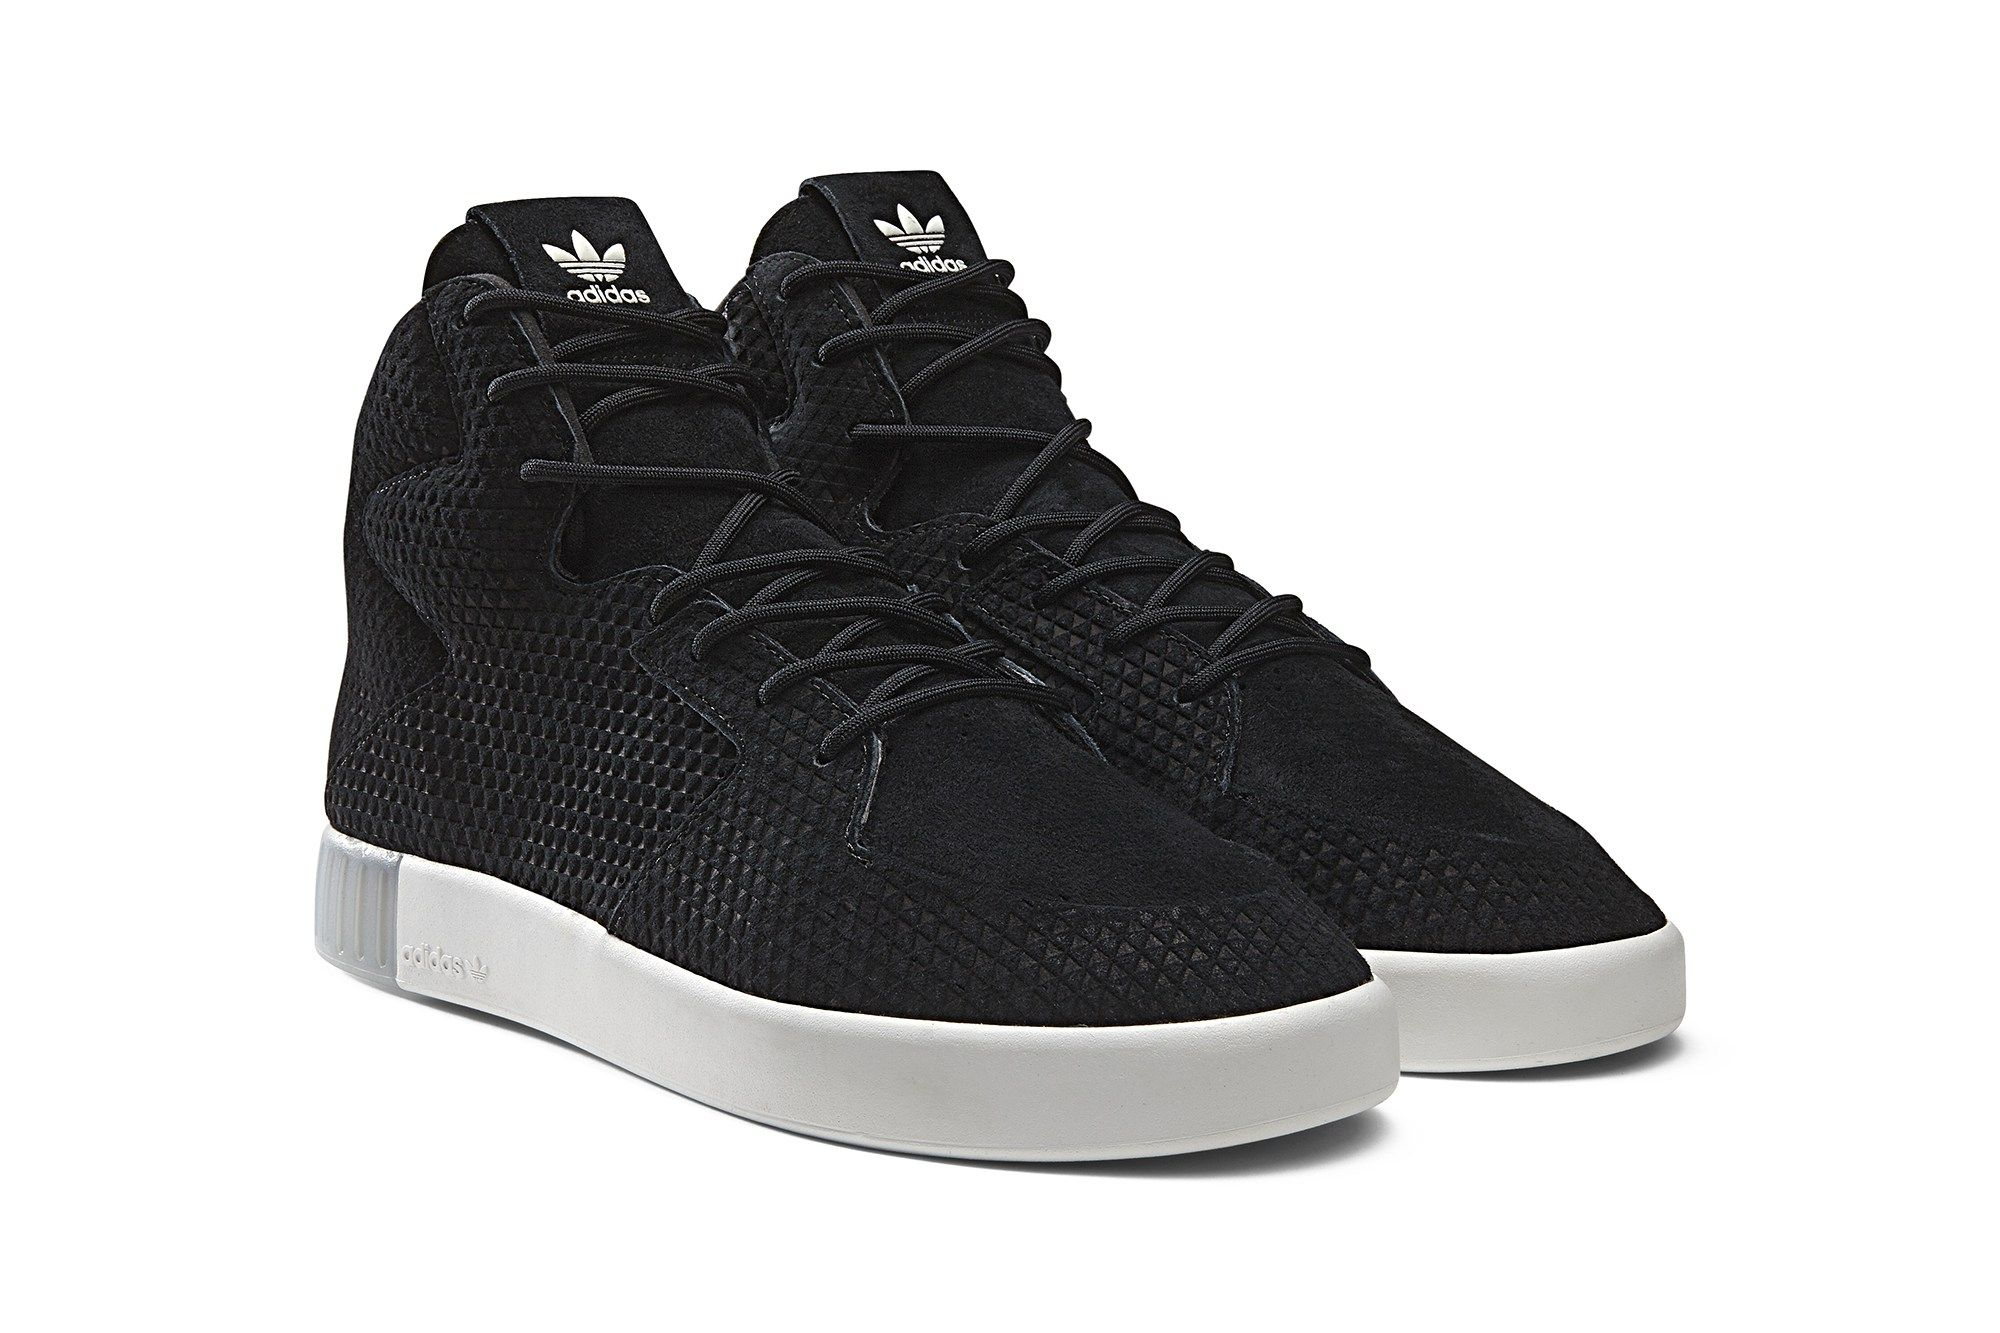 adidas Tubular Invader 2.0 Mens Shoes Black Beige